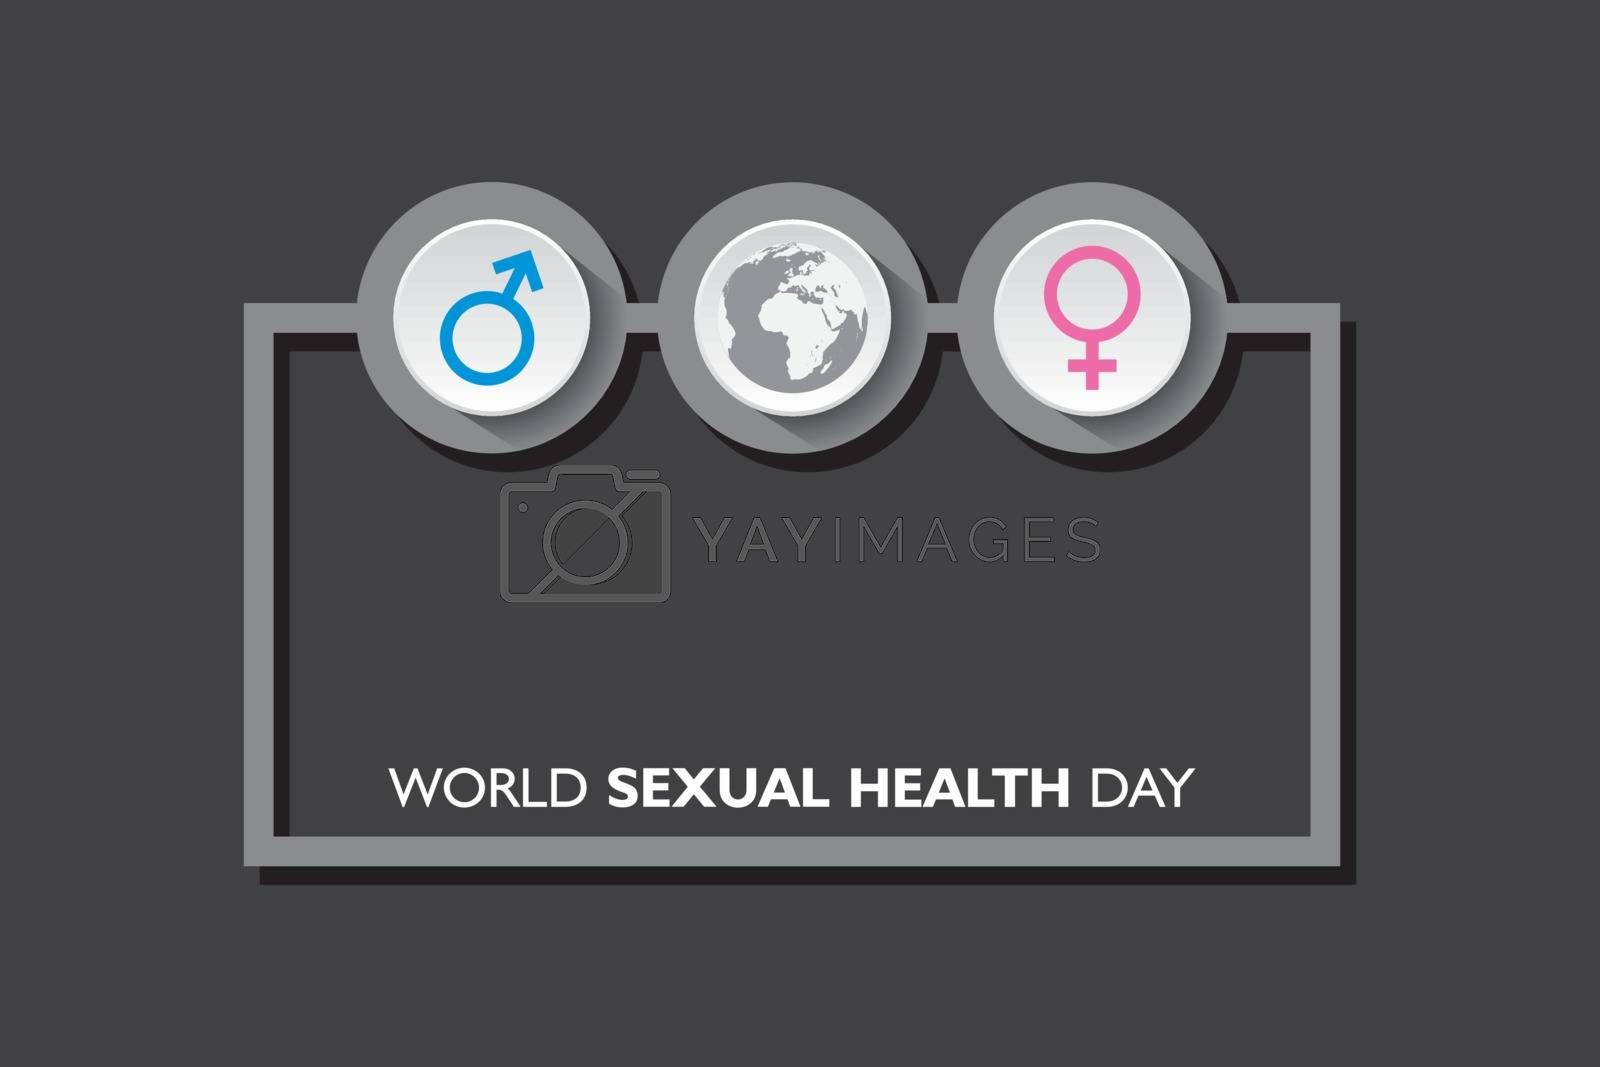 Vector Illustration of World Sexual Health Day Concept which is held on September 4th